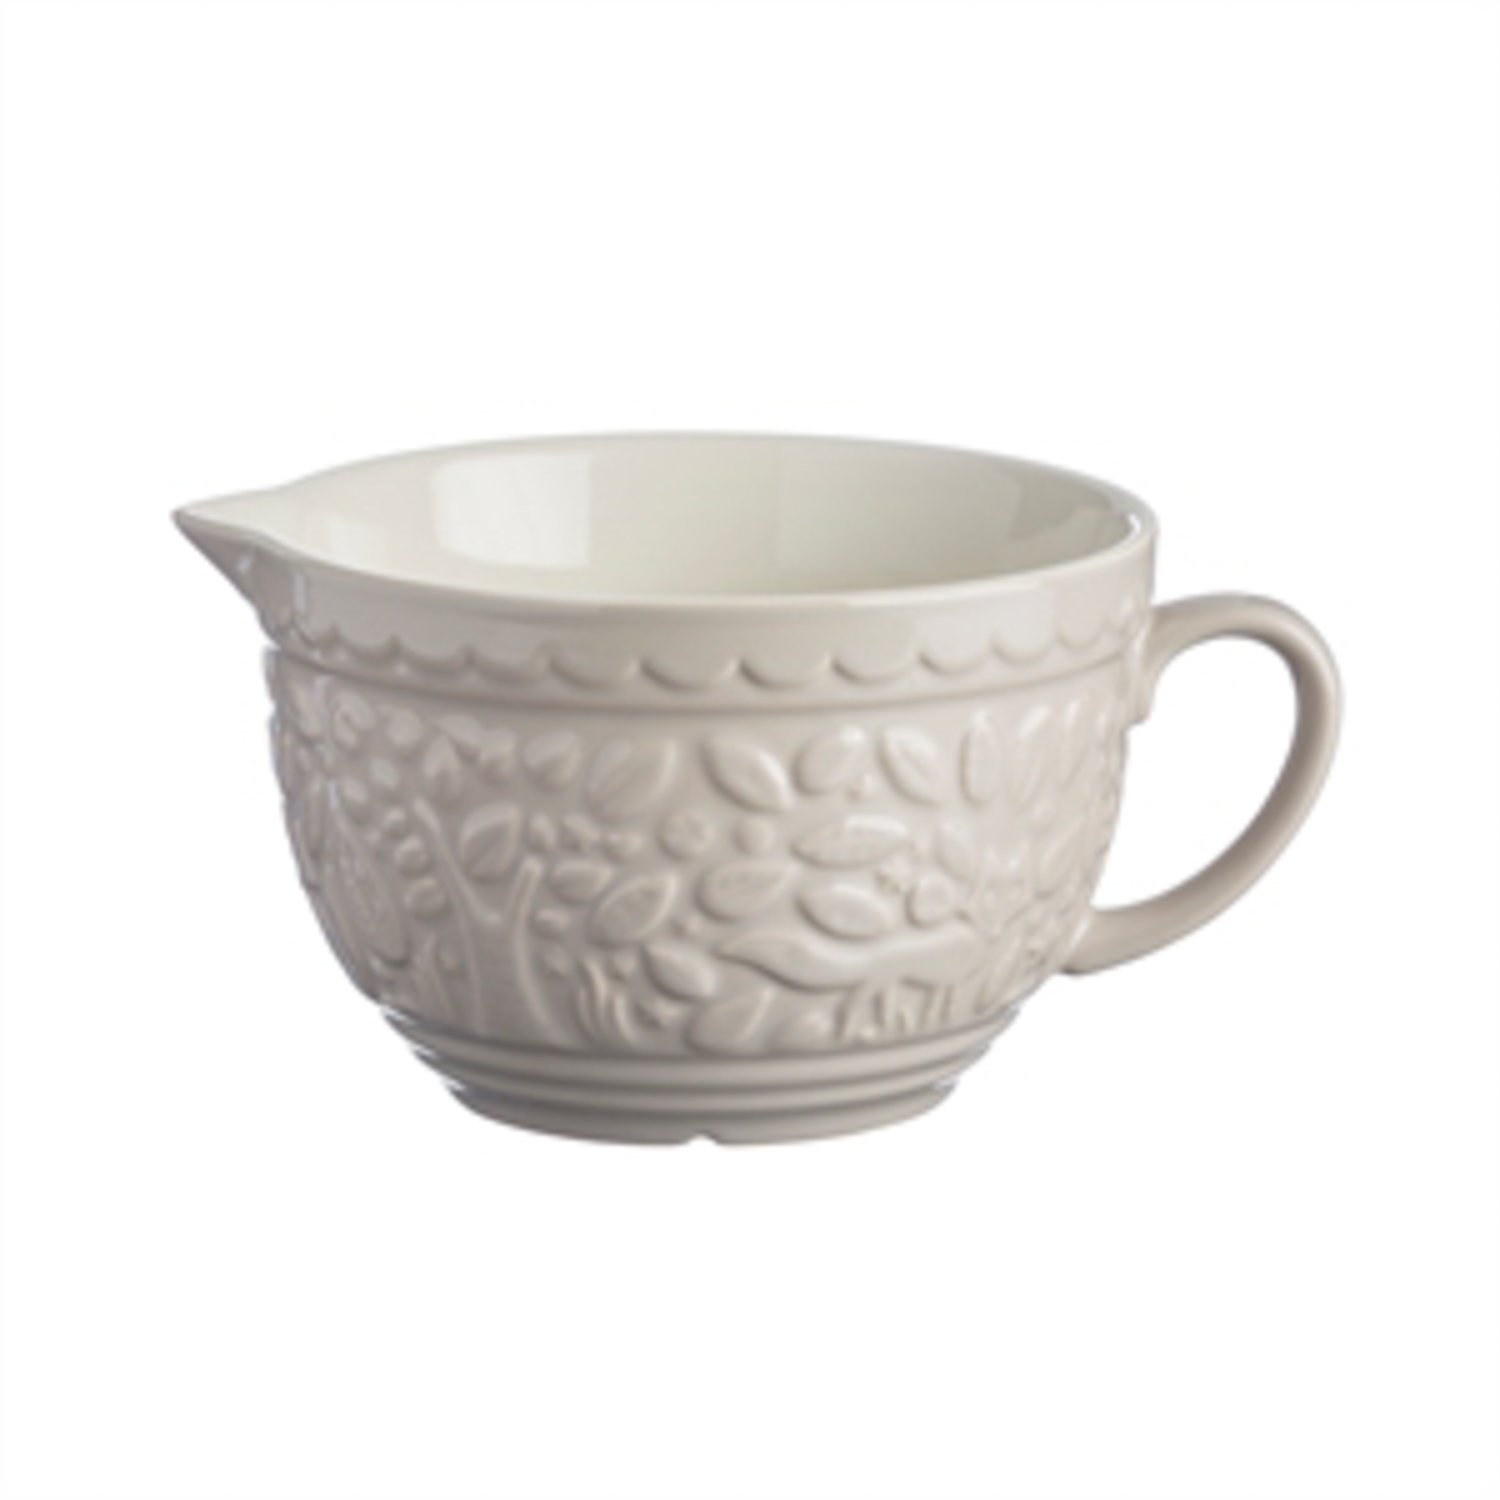 Mason Cash In The Forest Stoneware Batter Bowl, 9-3/4-Inches by 7-1/2-Inches by 5-Inches, Cream